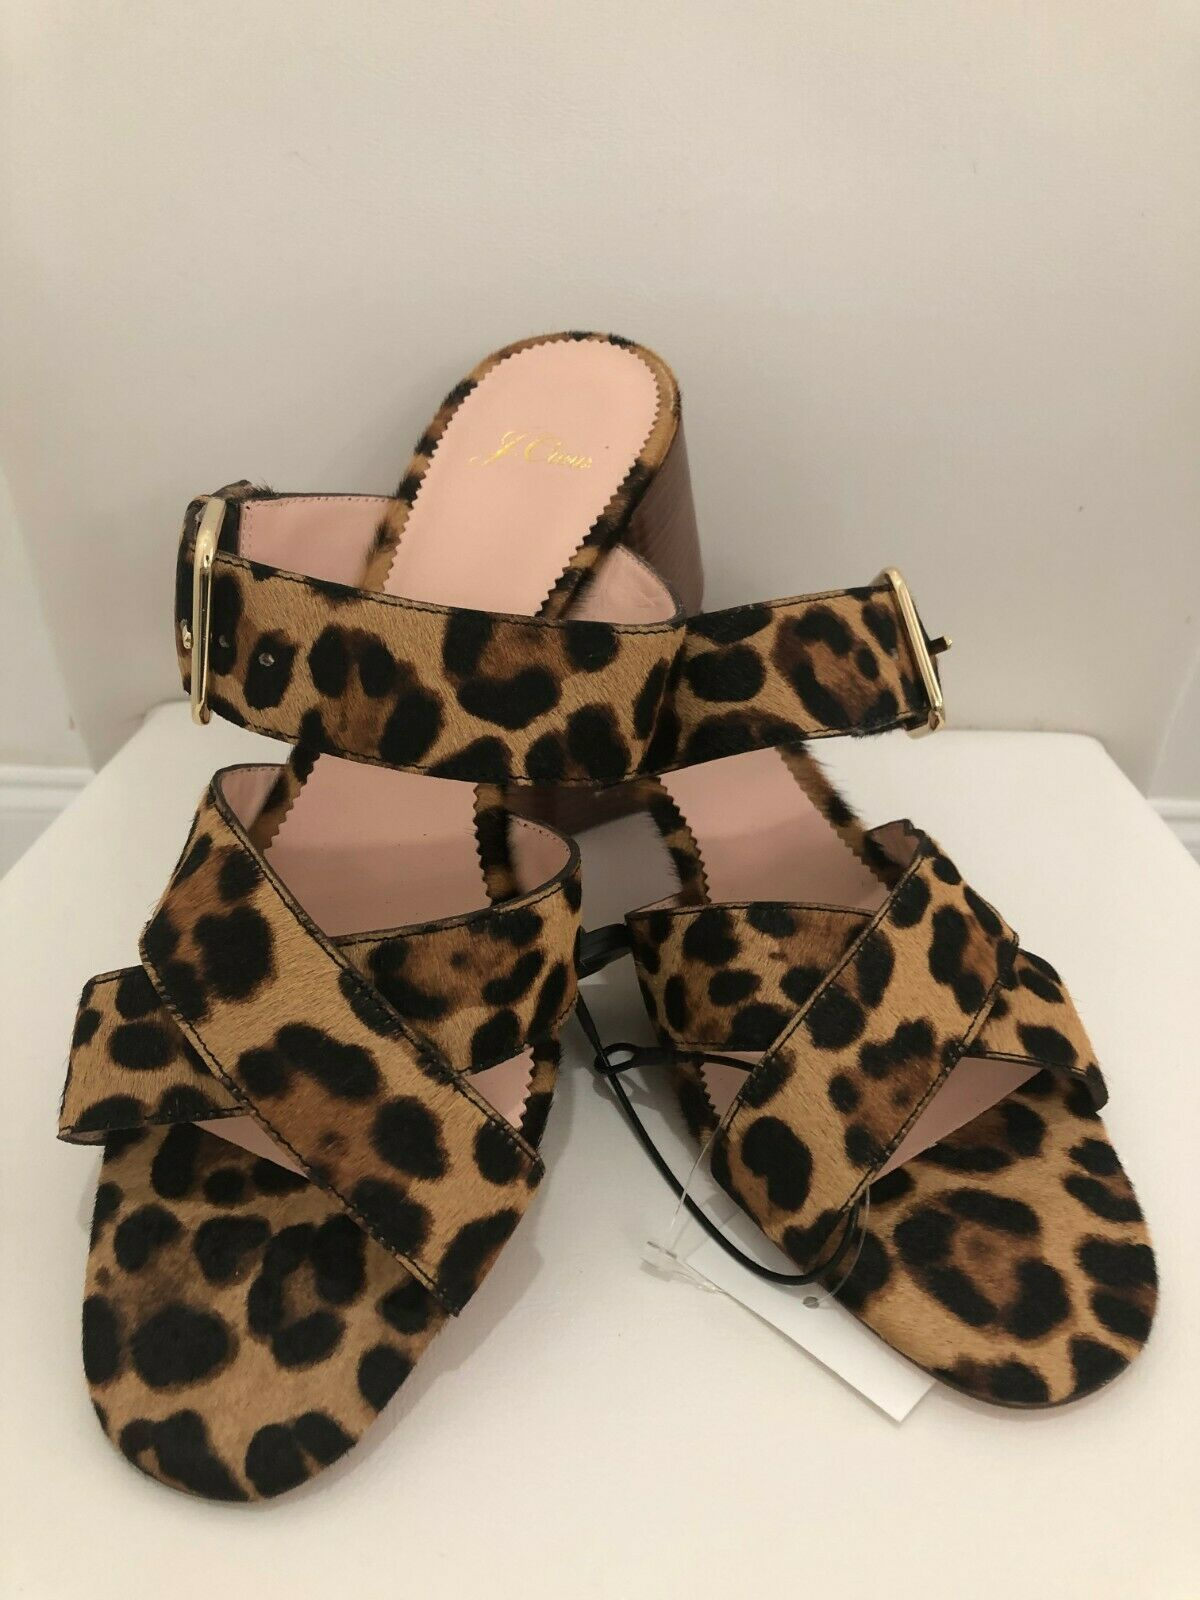 Primary image for J.CREW Leopard Print Calf Hair On Leather Sandals/Slides Sz. 10.5 $198  NEW